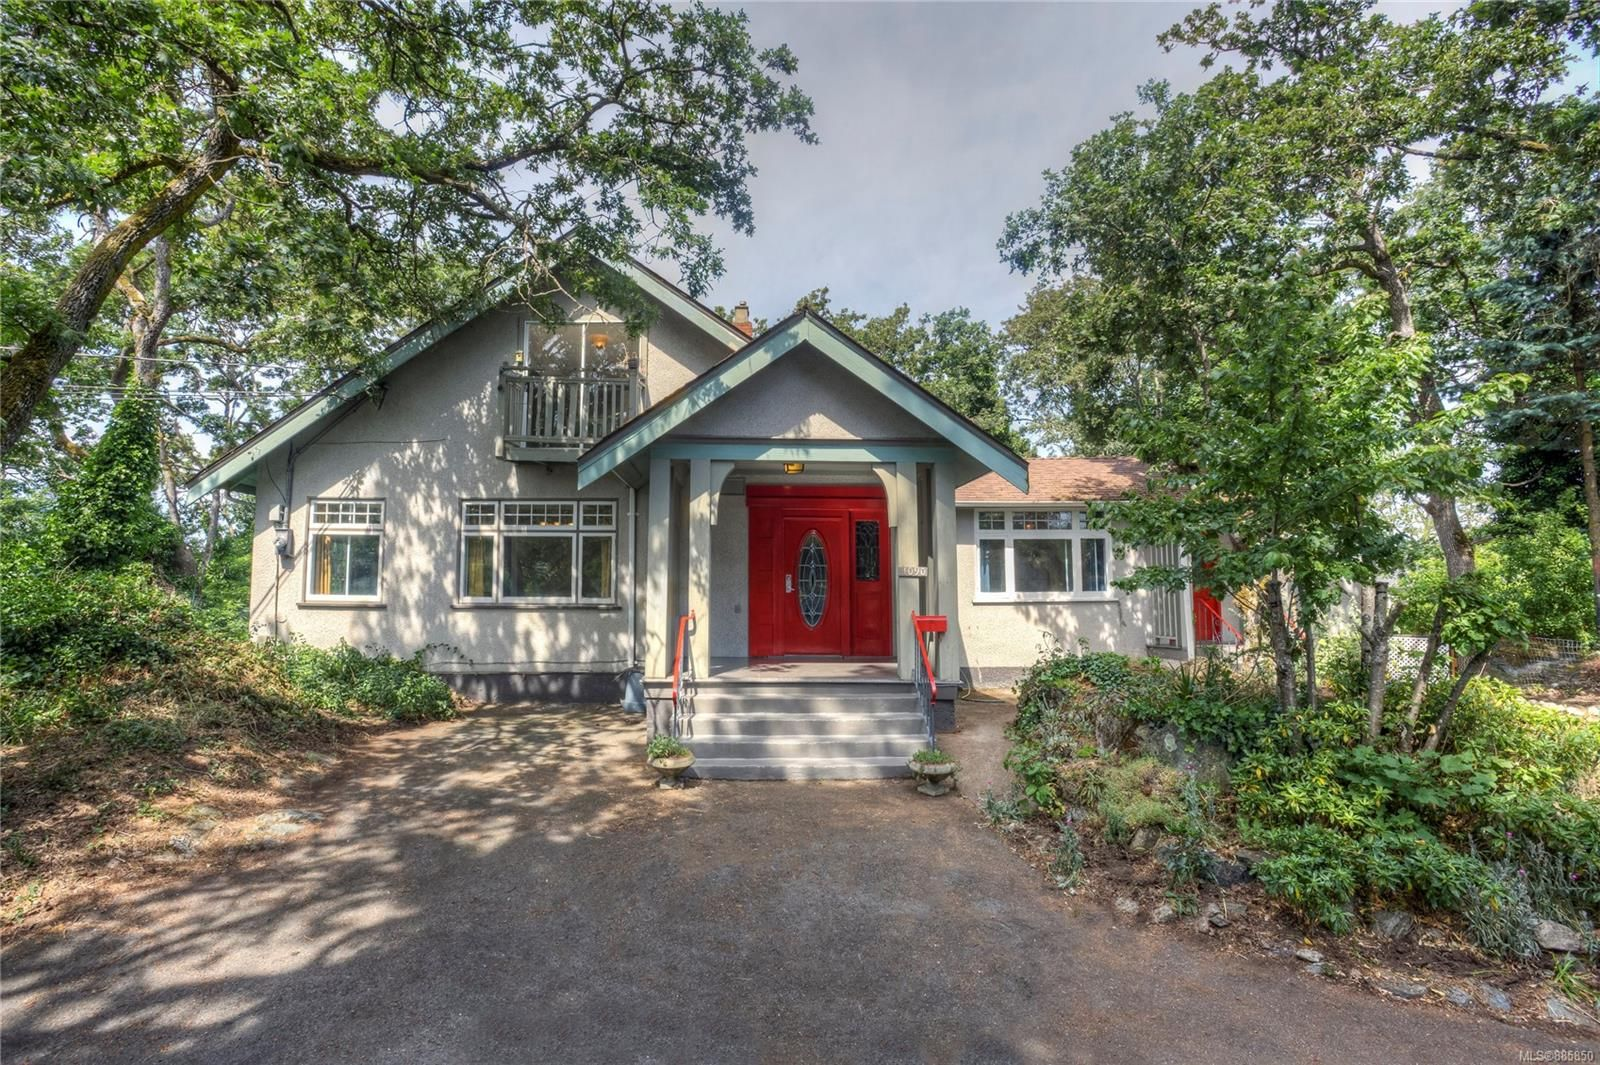 Main Photo: 1090 Lodge Ave in : SE Quadra House for sale (Saanich East)  : MLS®# 885850